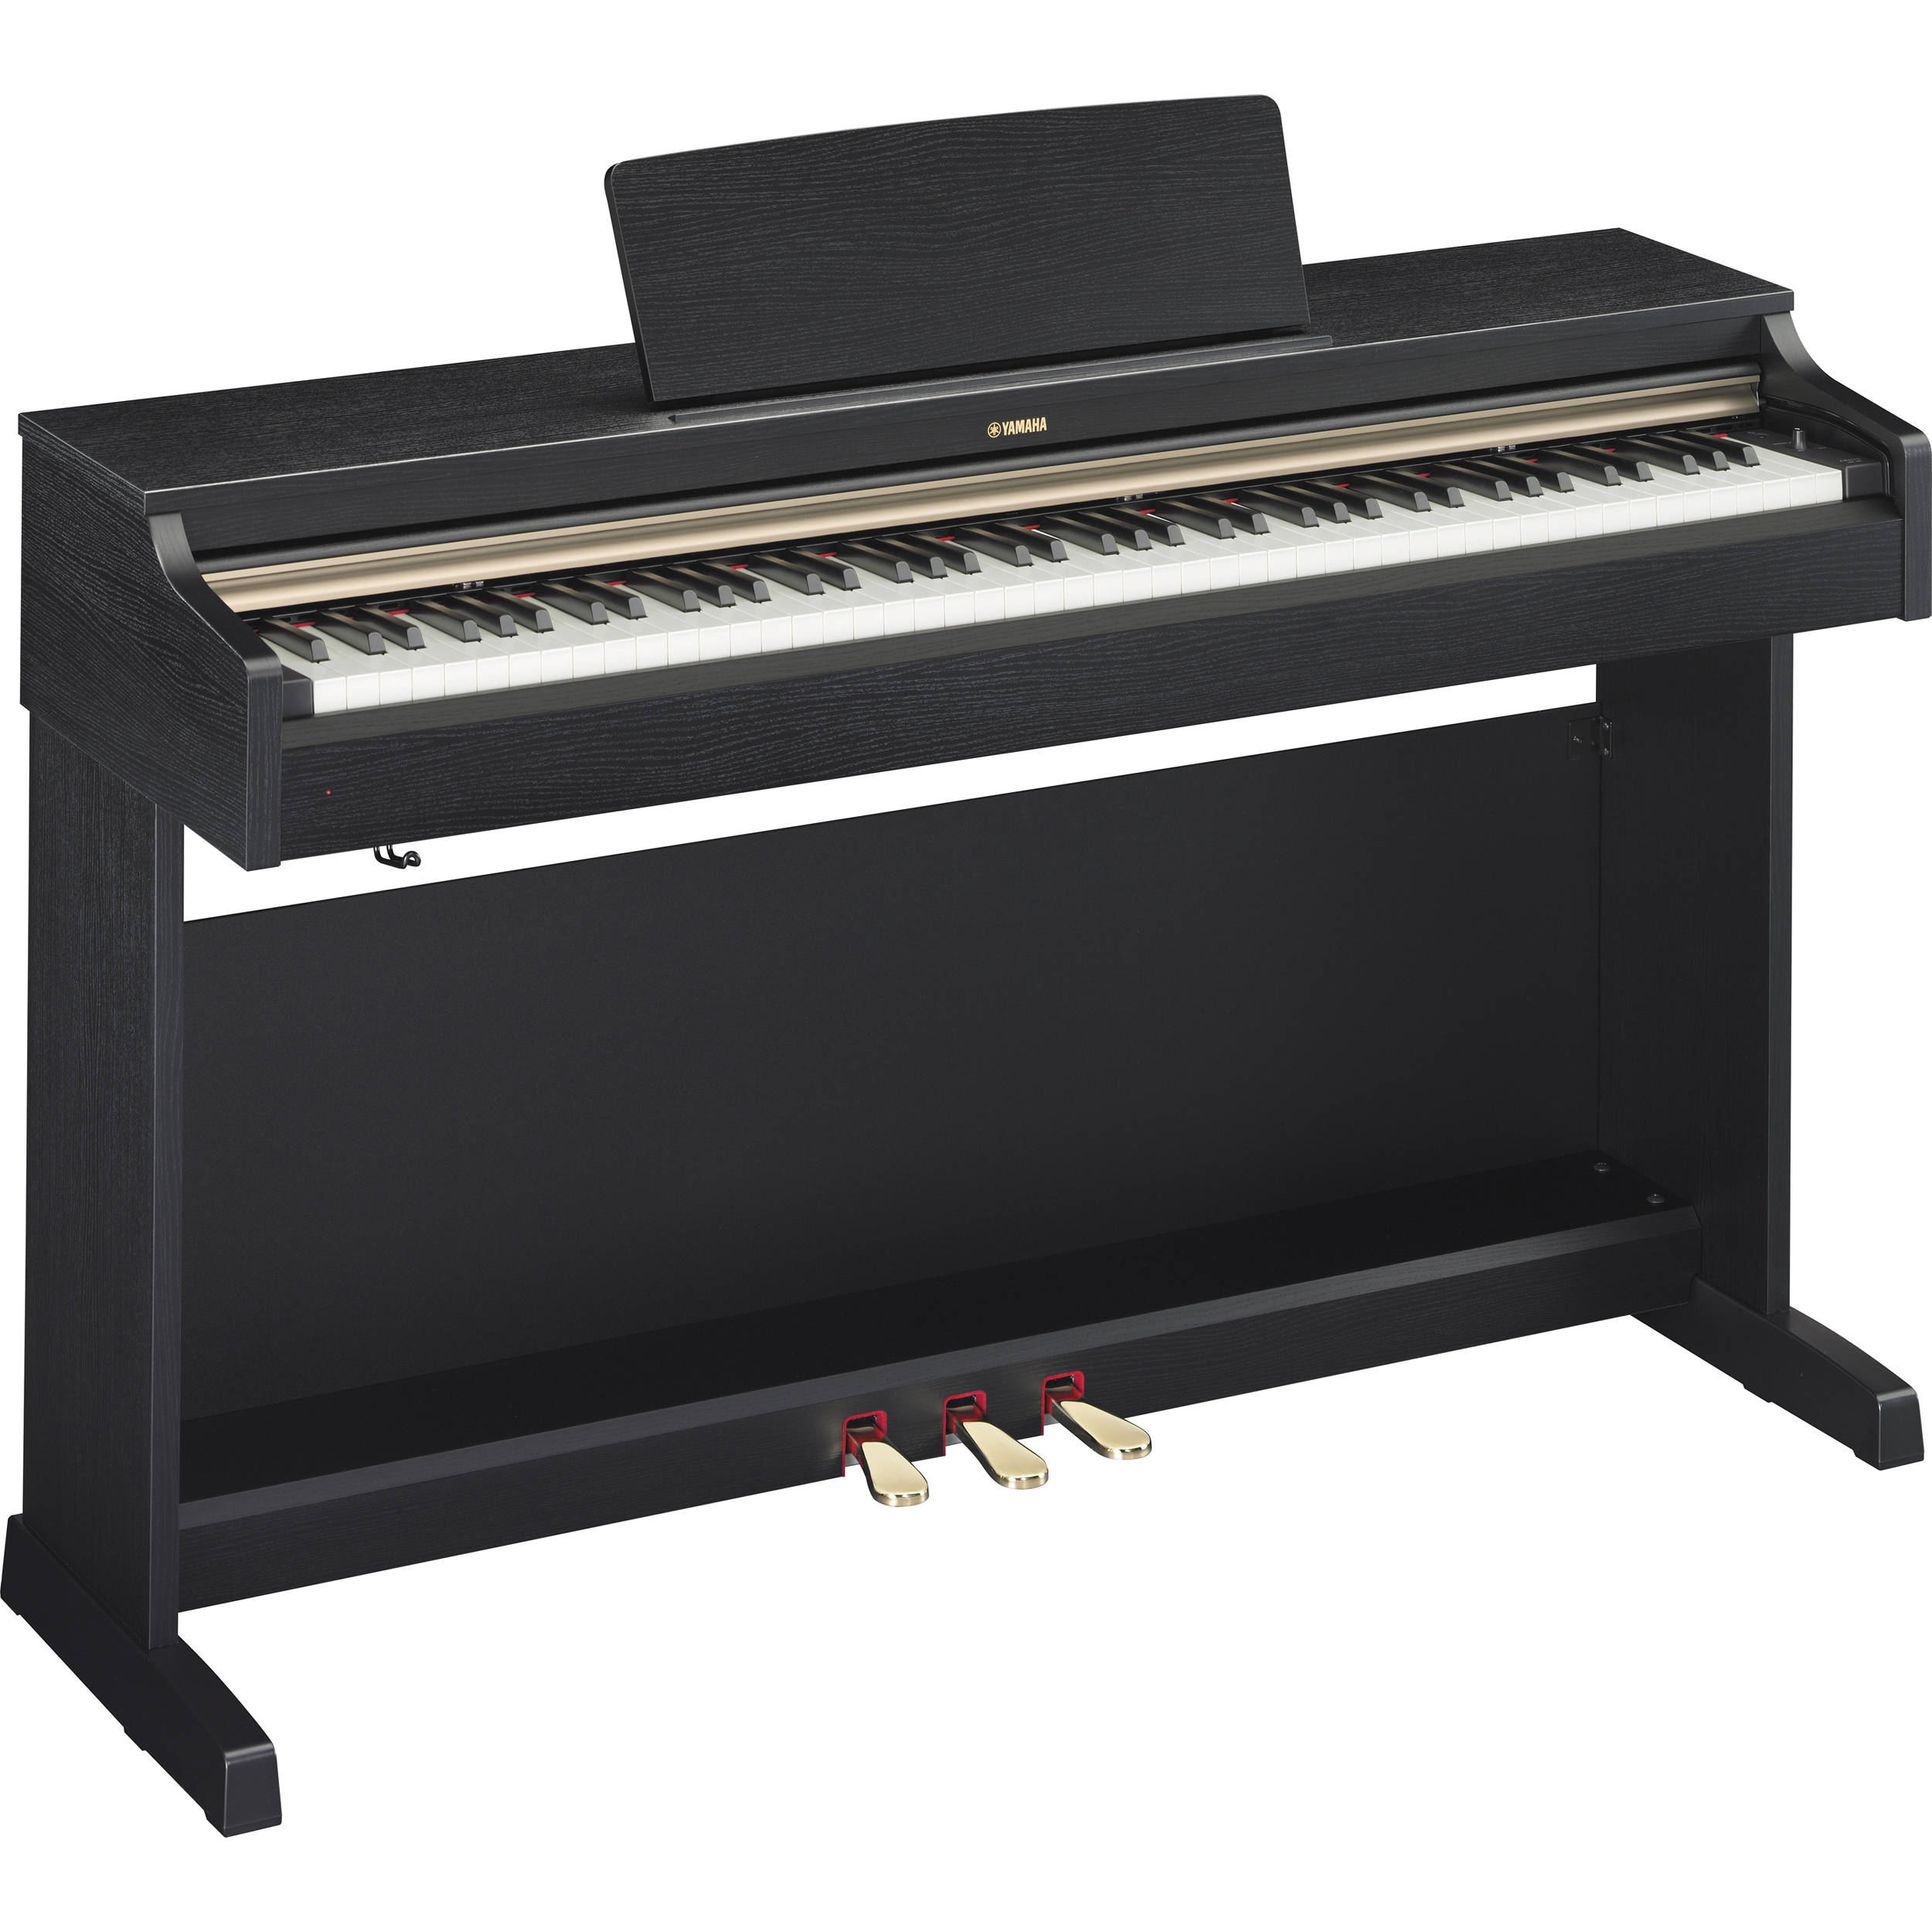 Yamaha Ydp Digital Piano Review